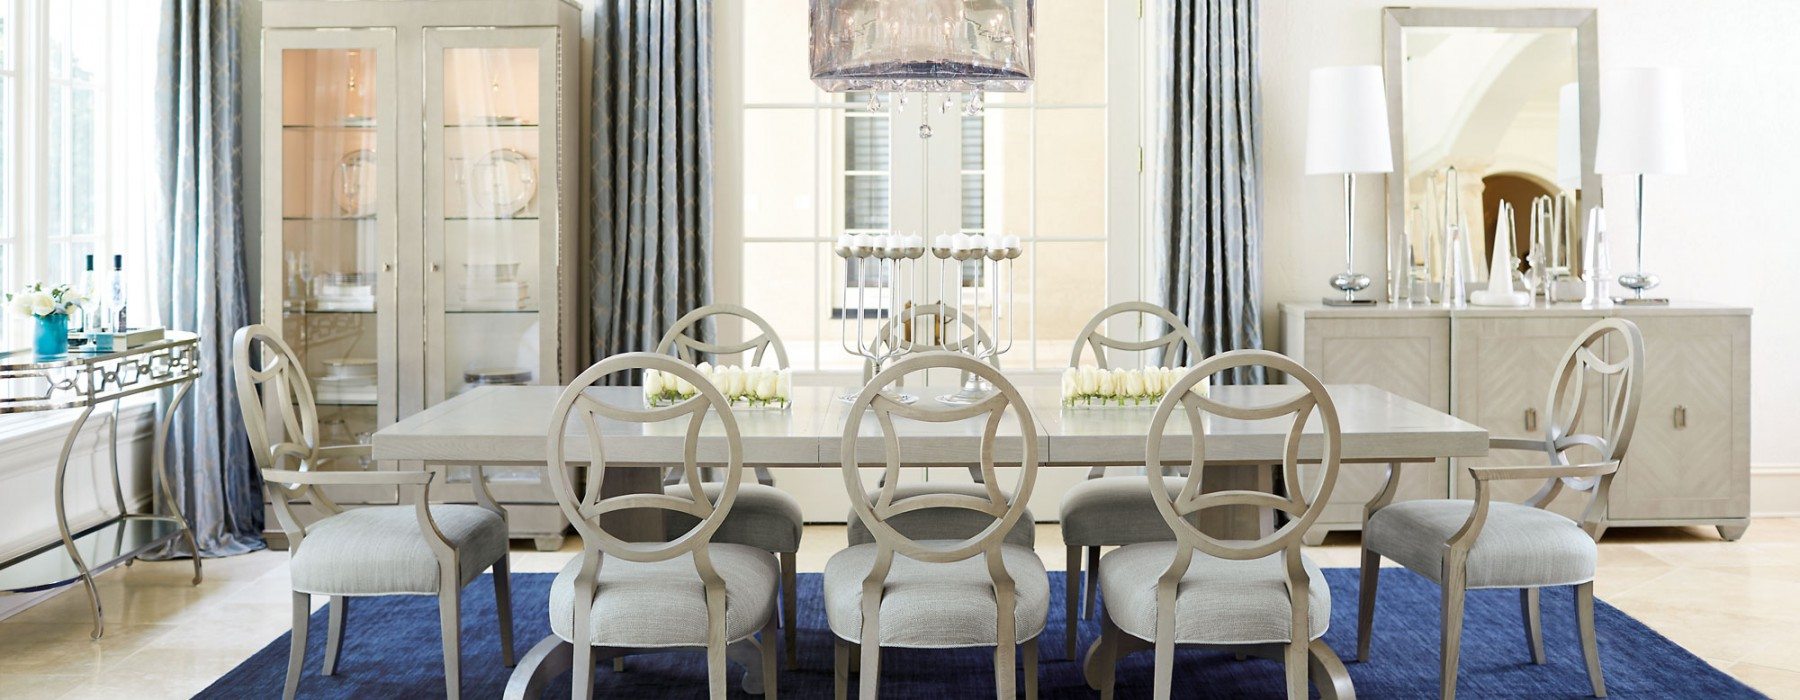 How to Design a Perfectly Scaled Dining Room